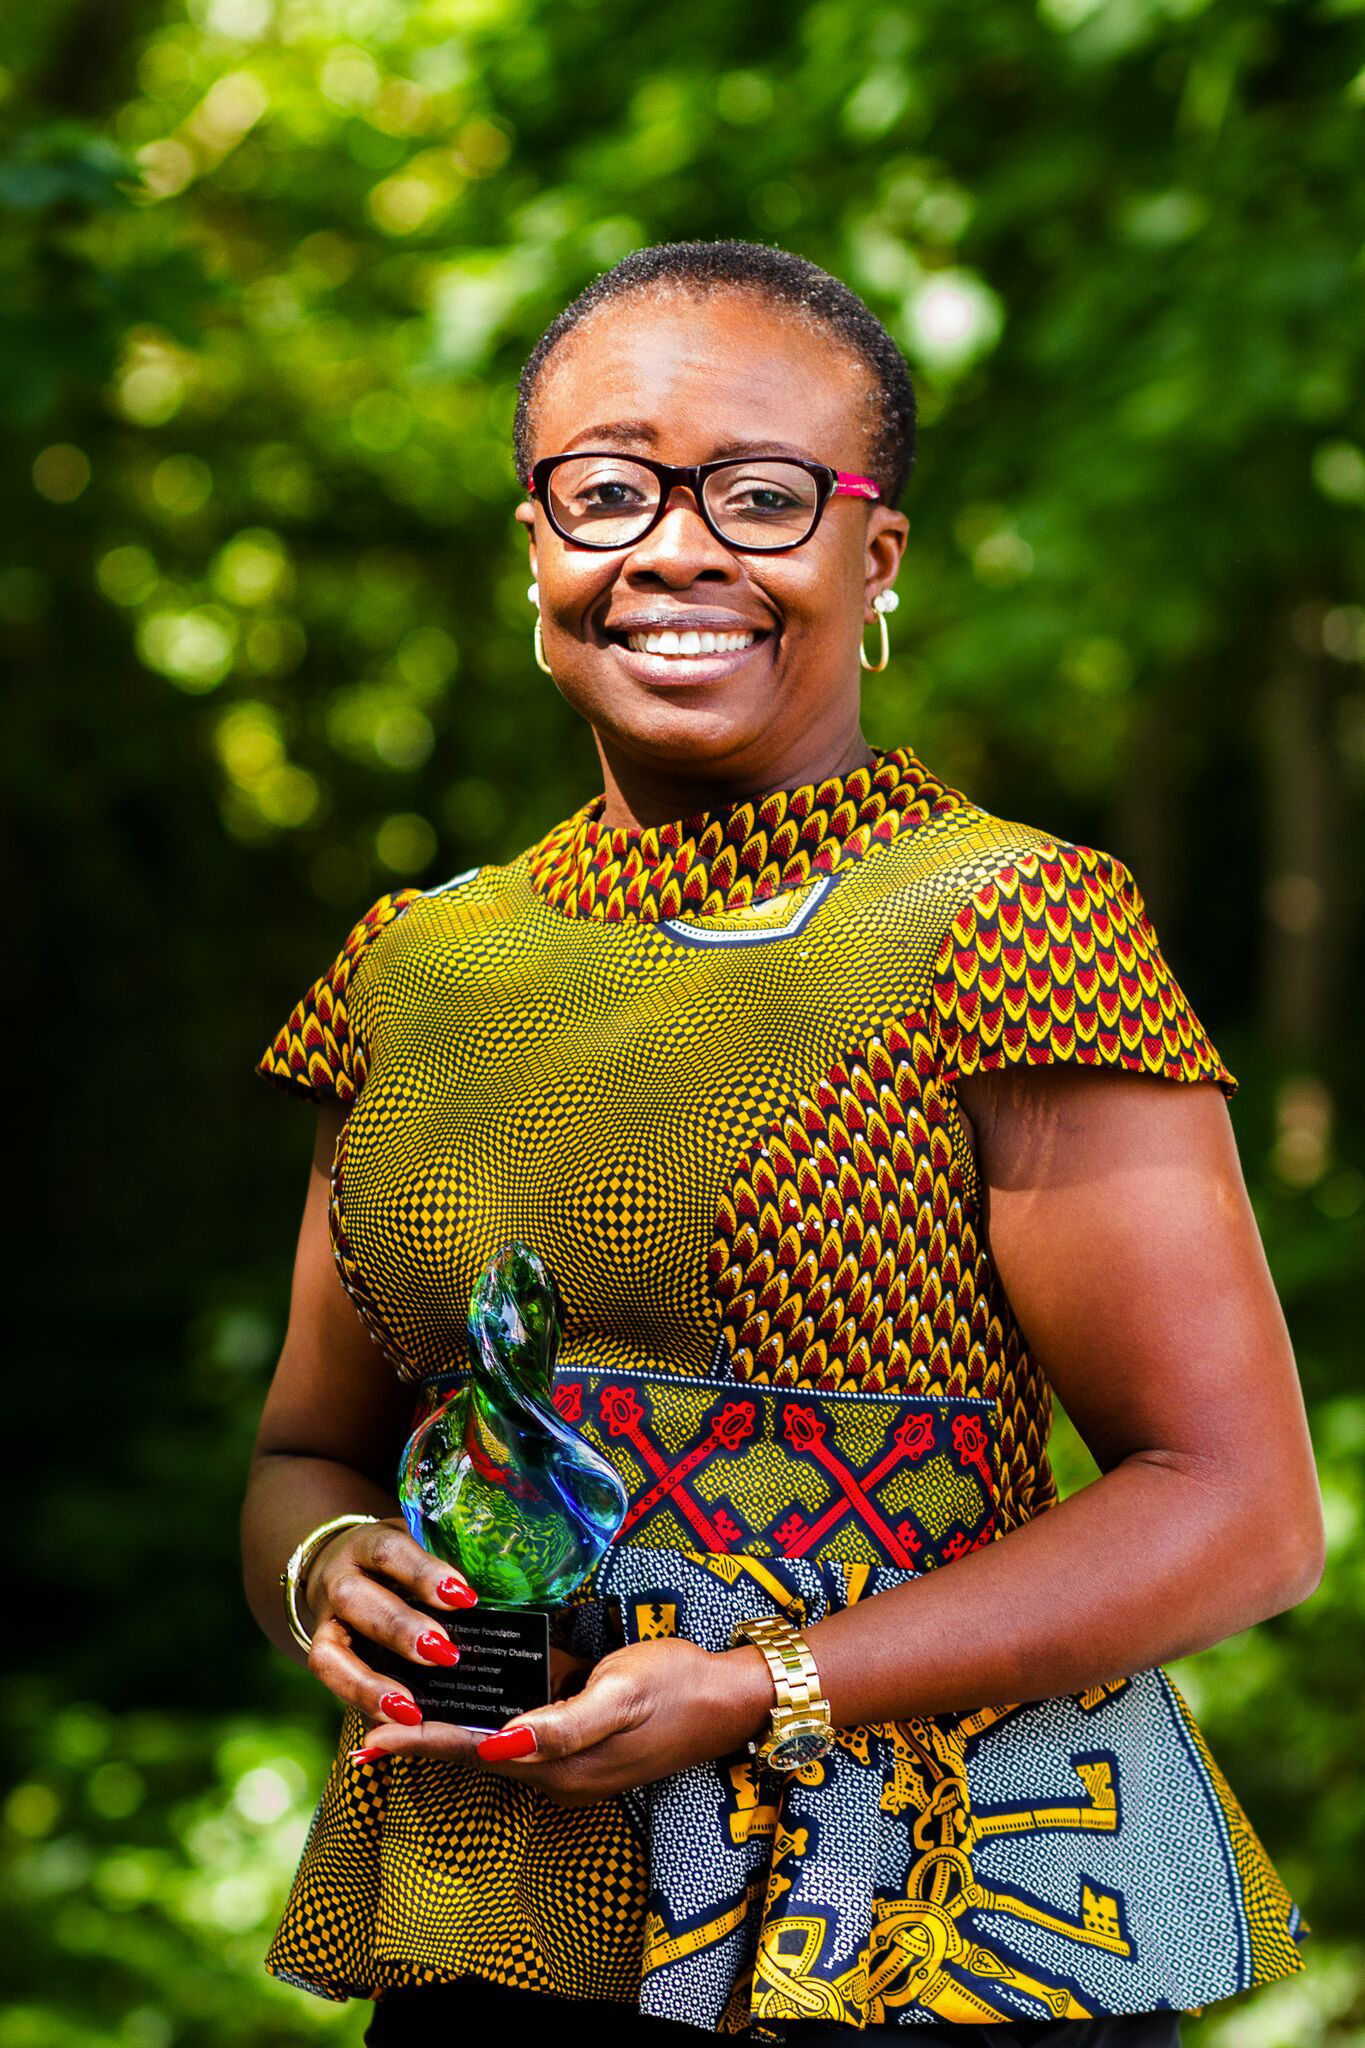 Chioma Blaise Chikere, 2017 second prize winner of the Green Sustainable Chemistry Challenge